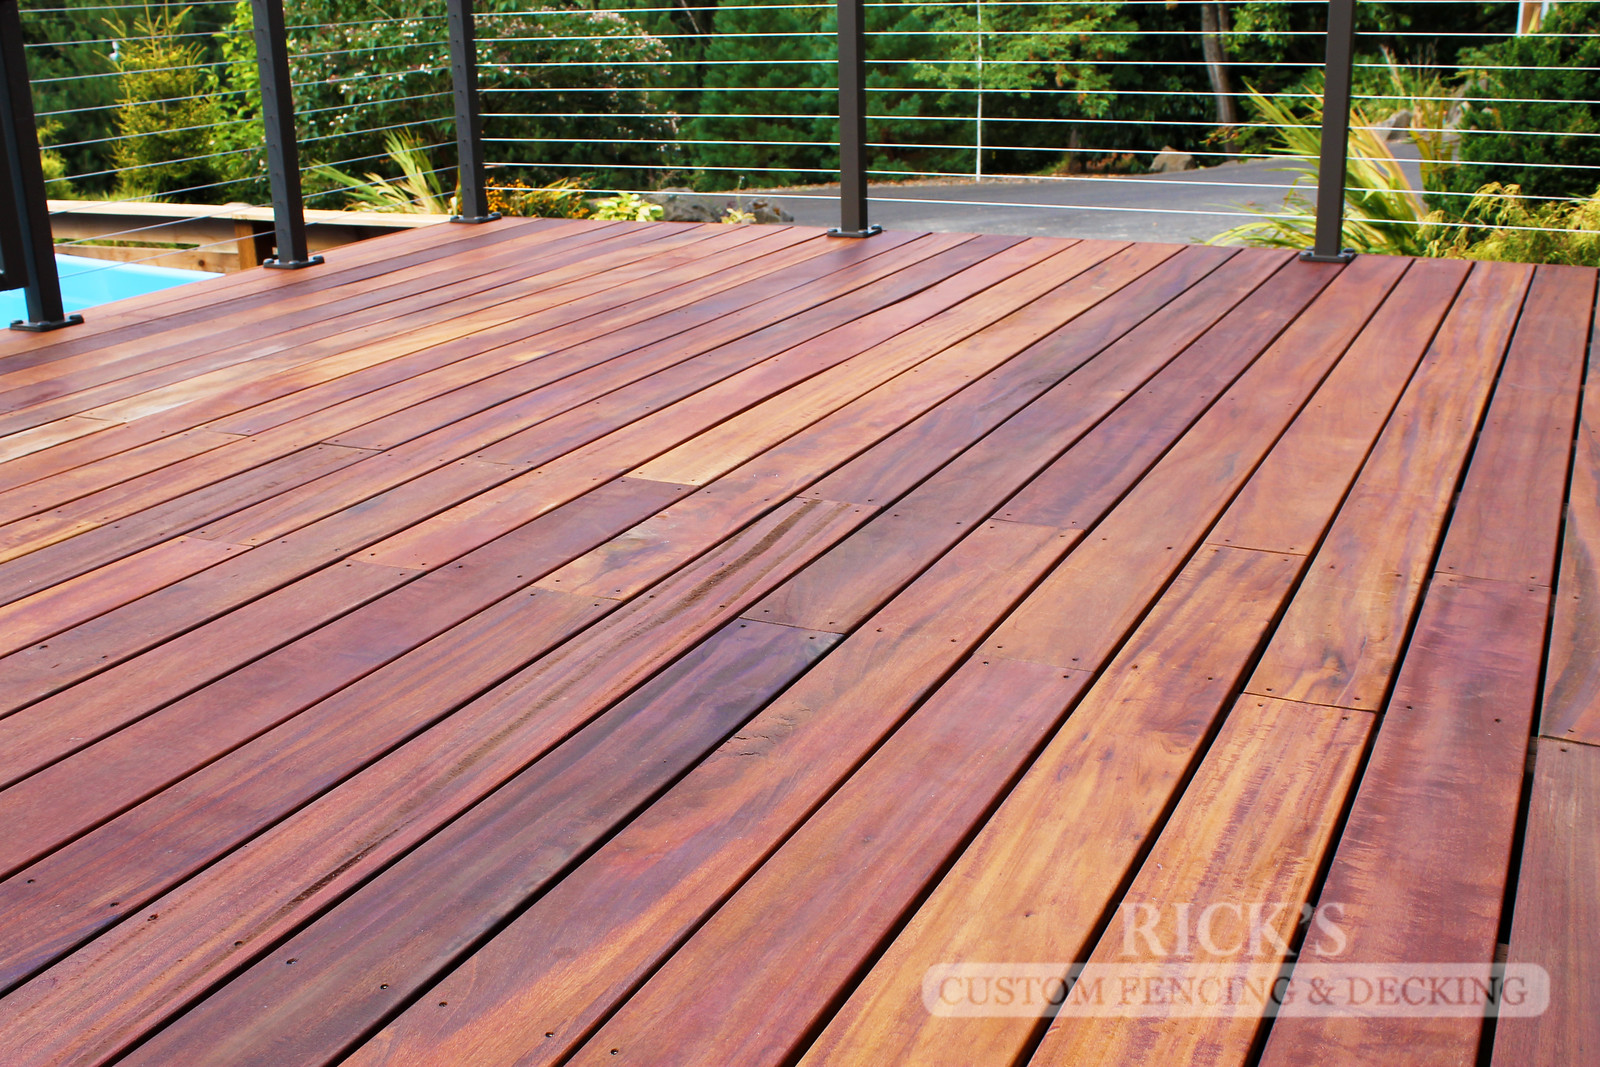 1112 - TigerWood Hardwood Decking